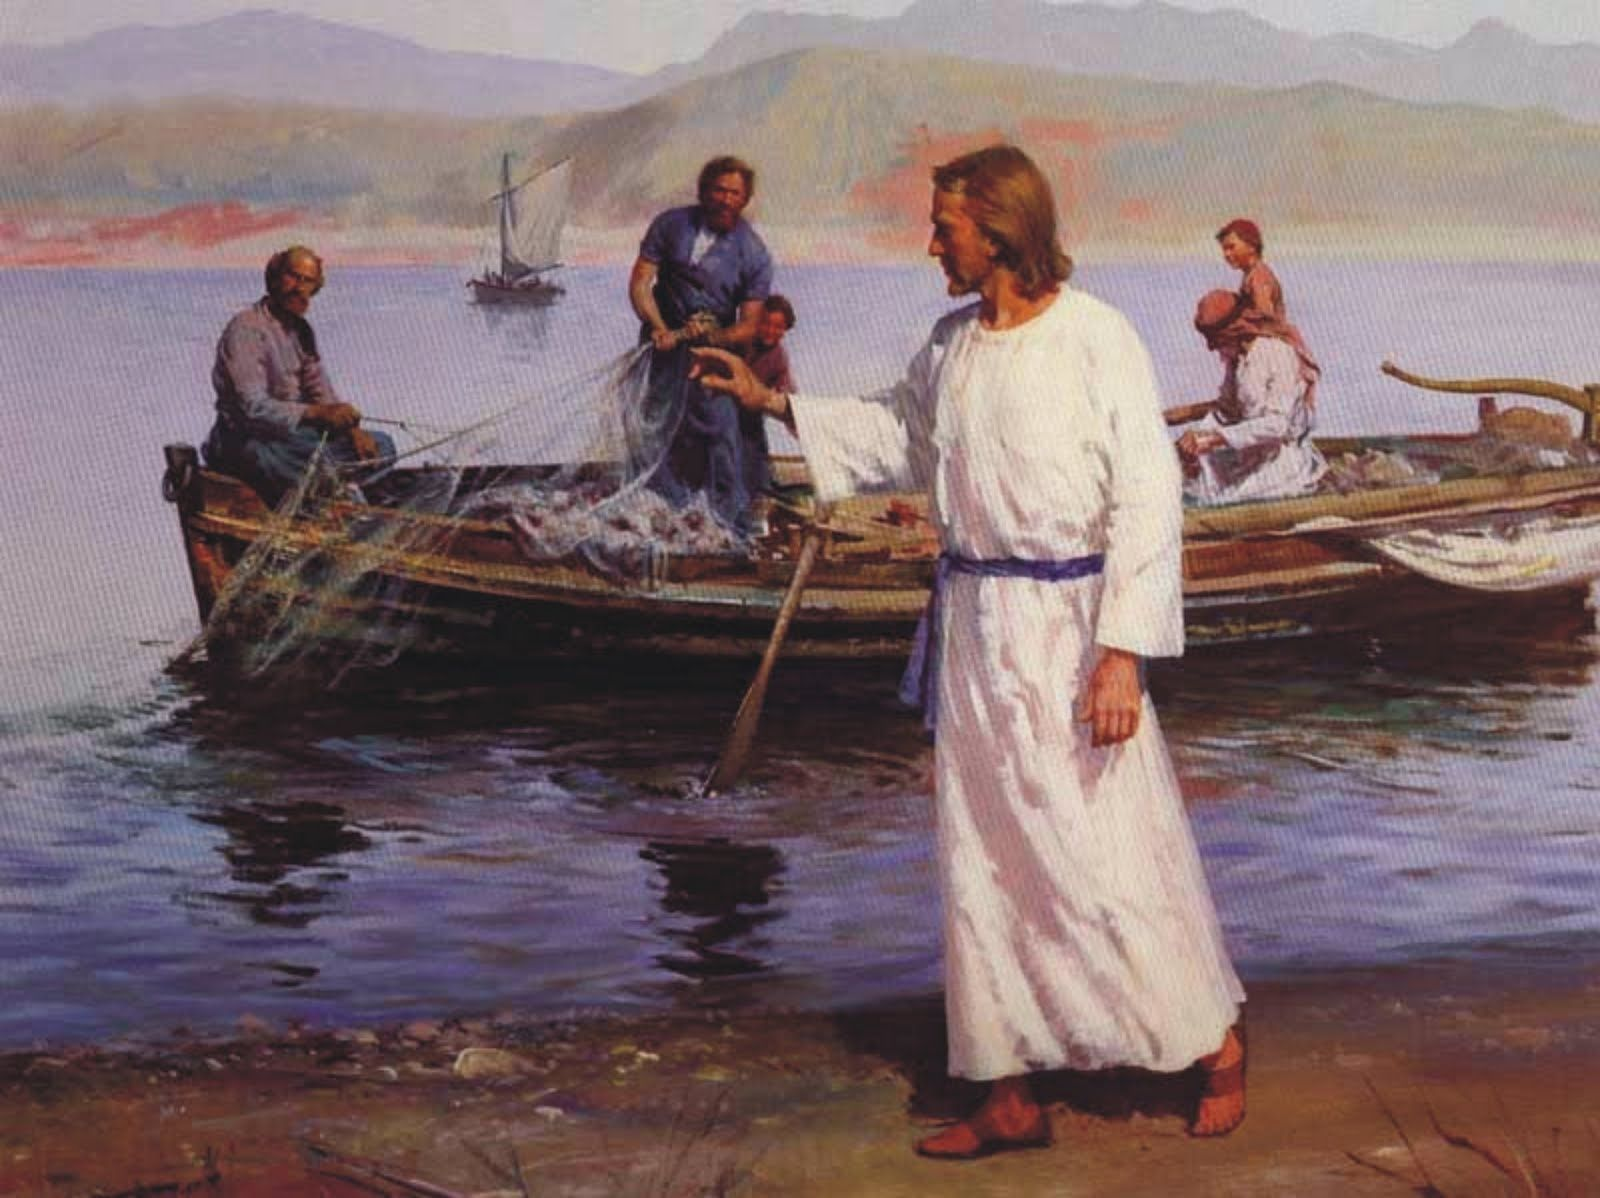 Jesus called his first disciples, Simon Peter and brother